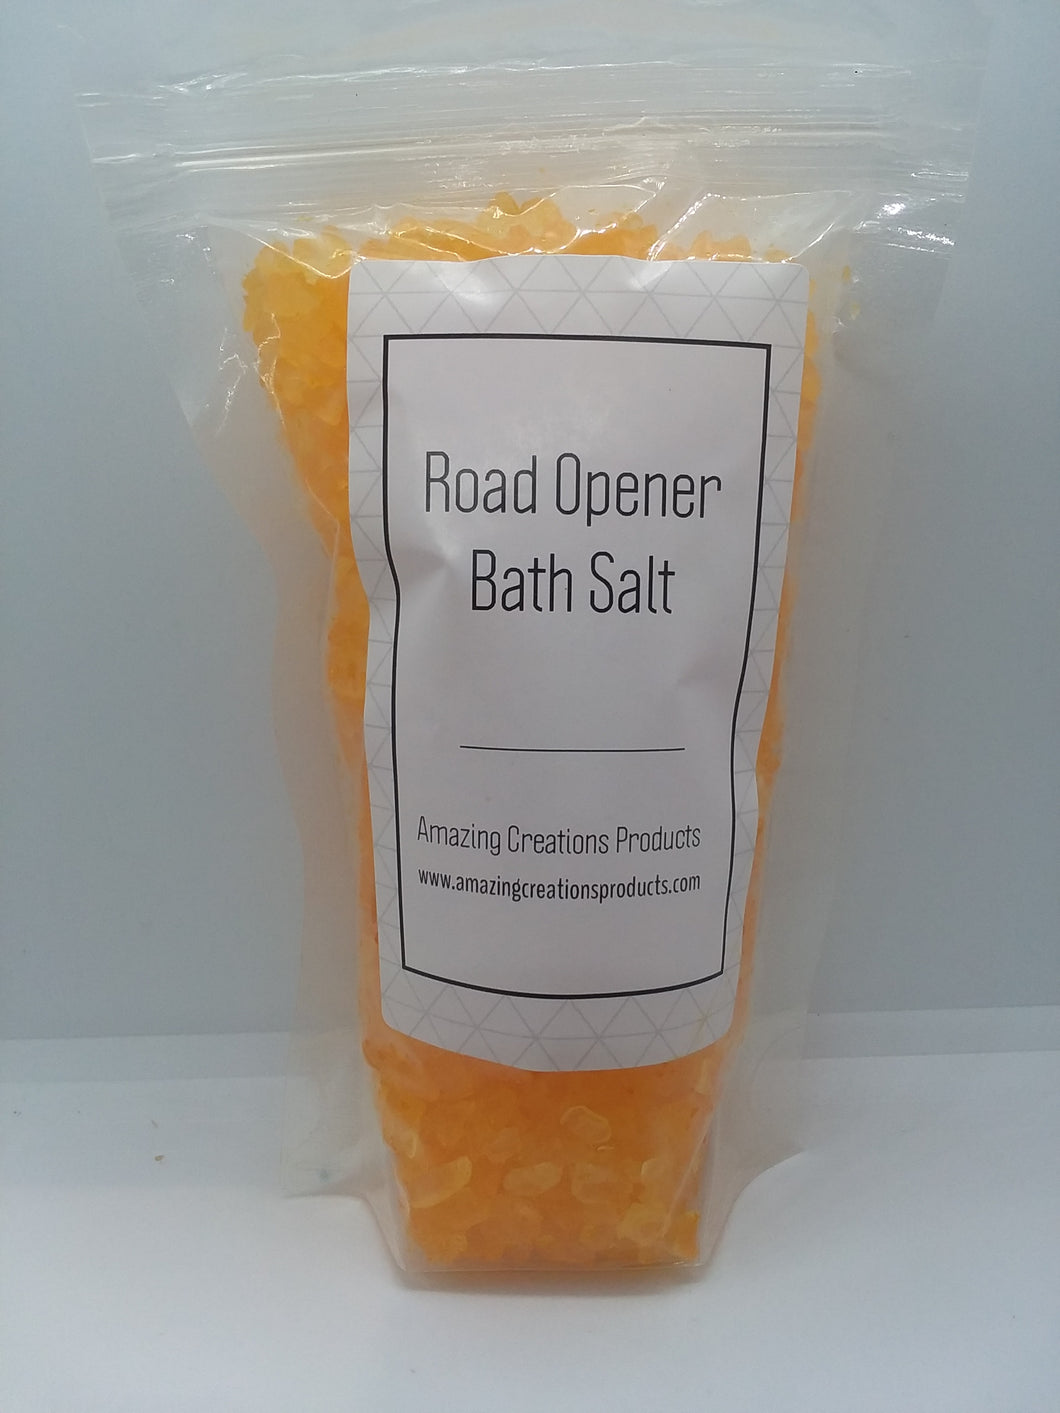 Road Opener Bath Salt